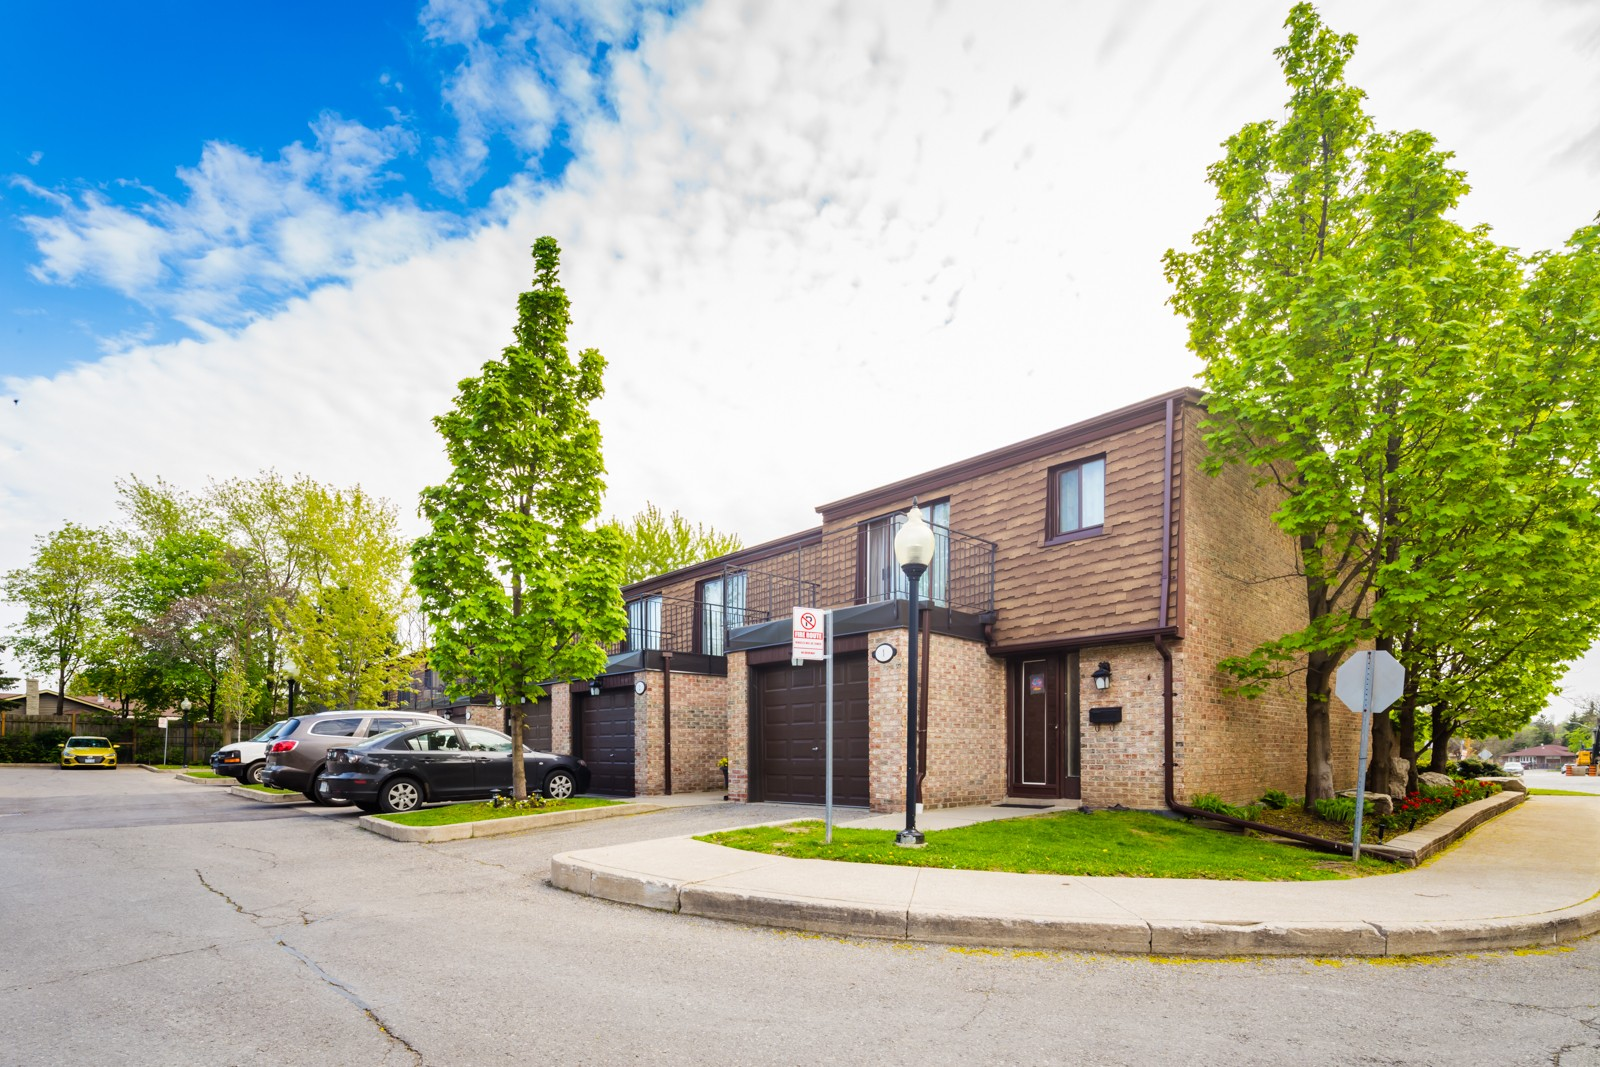 3395 Cliff Road Townhouses at 3395 Cliff Rd N, Mississauga 1